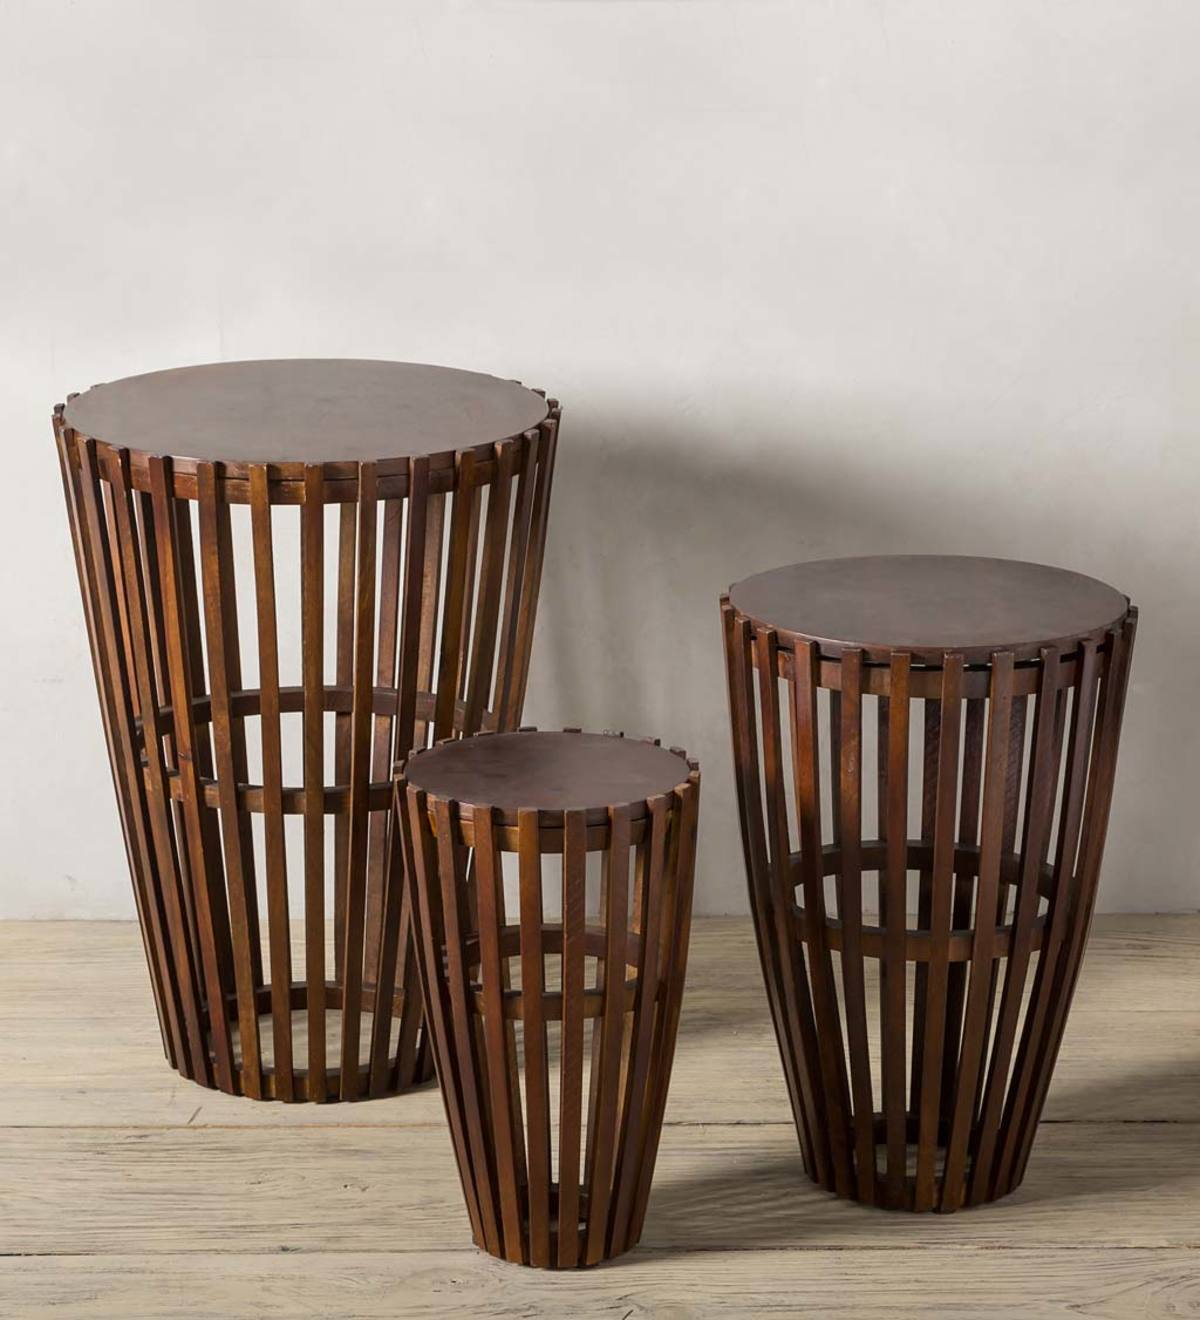 Nesting Wooden Drum Table Set - Dark Finish